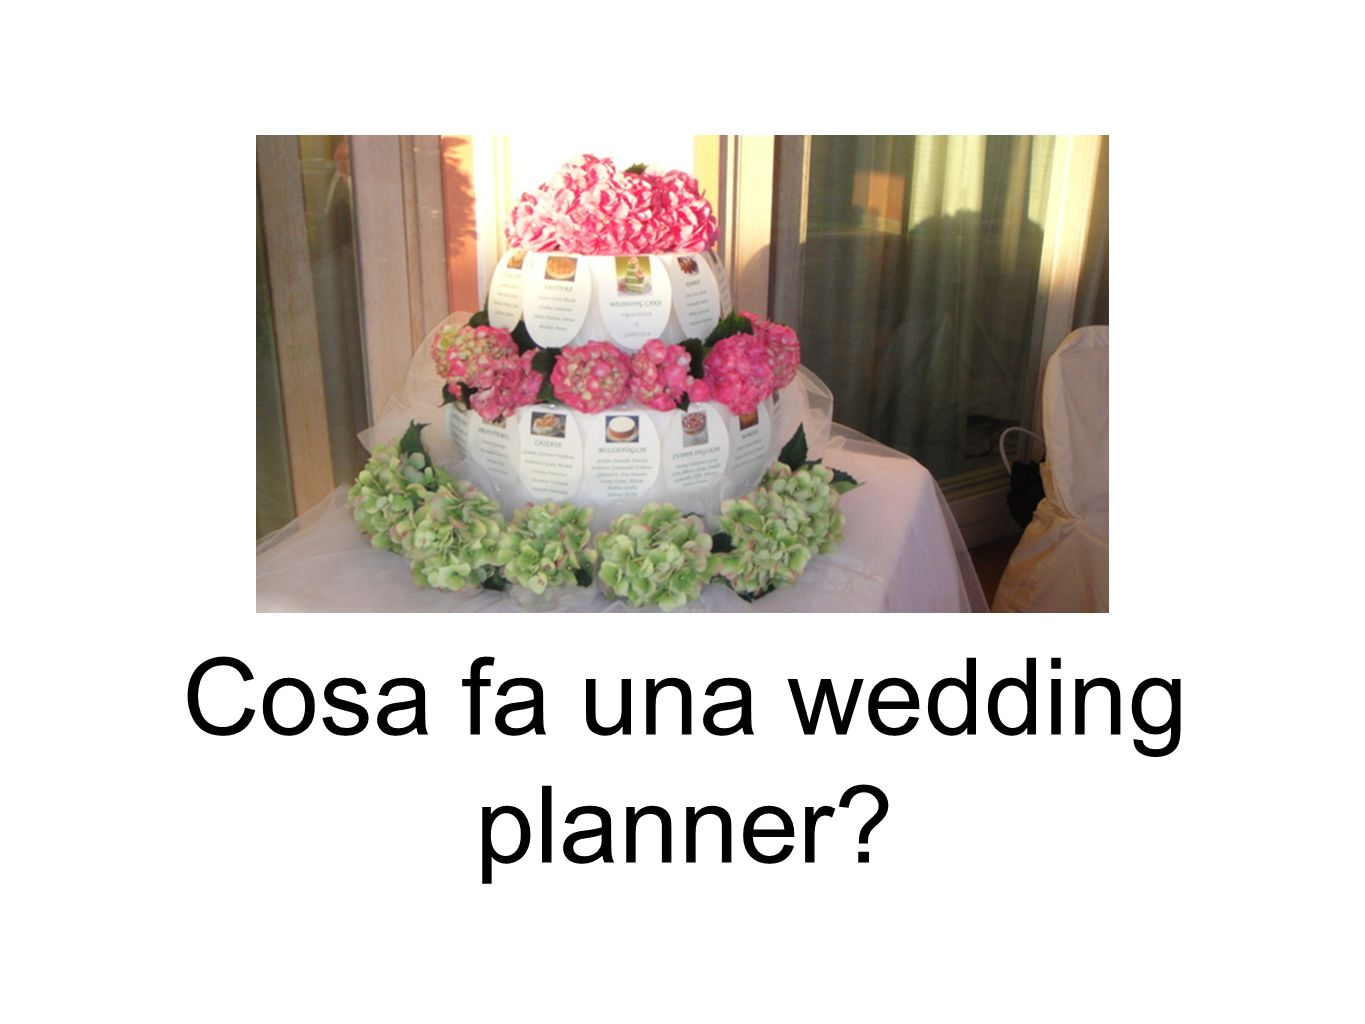 Cosa fa una wedding planner